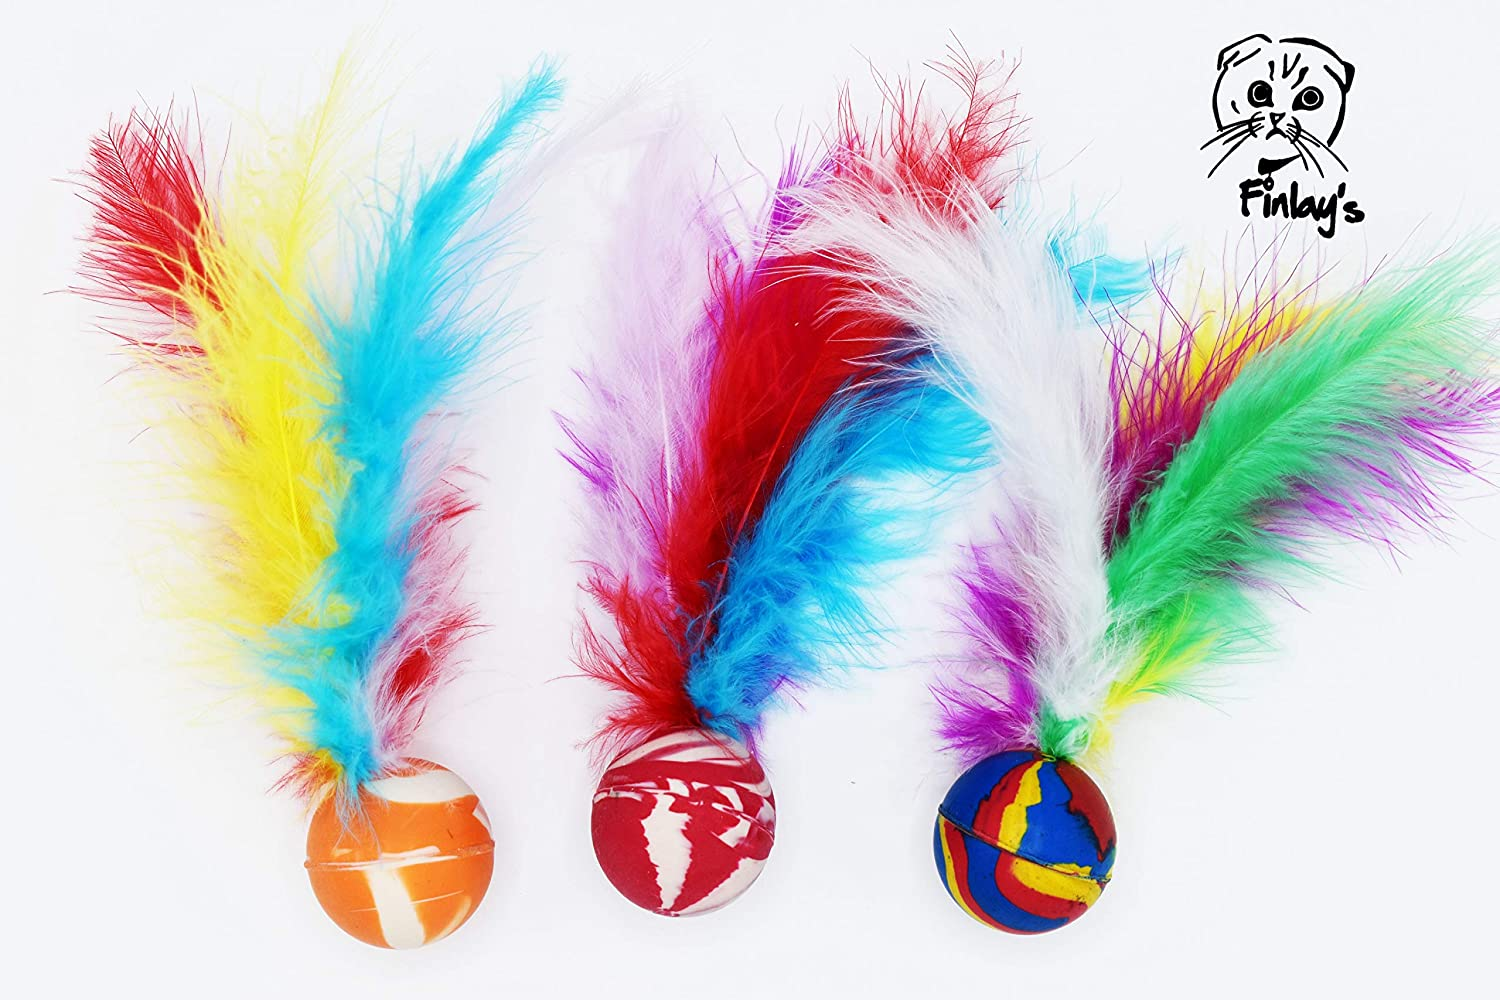 FINLAY'S Large Max 84% OFF Colorful Bouncy Regular store Feather Kit Cat Balls Interactive